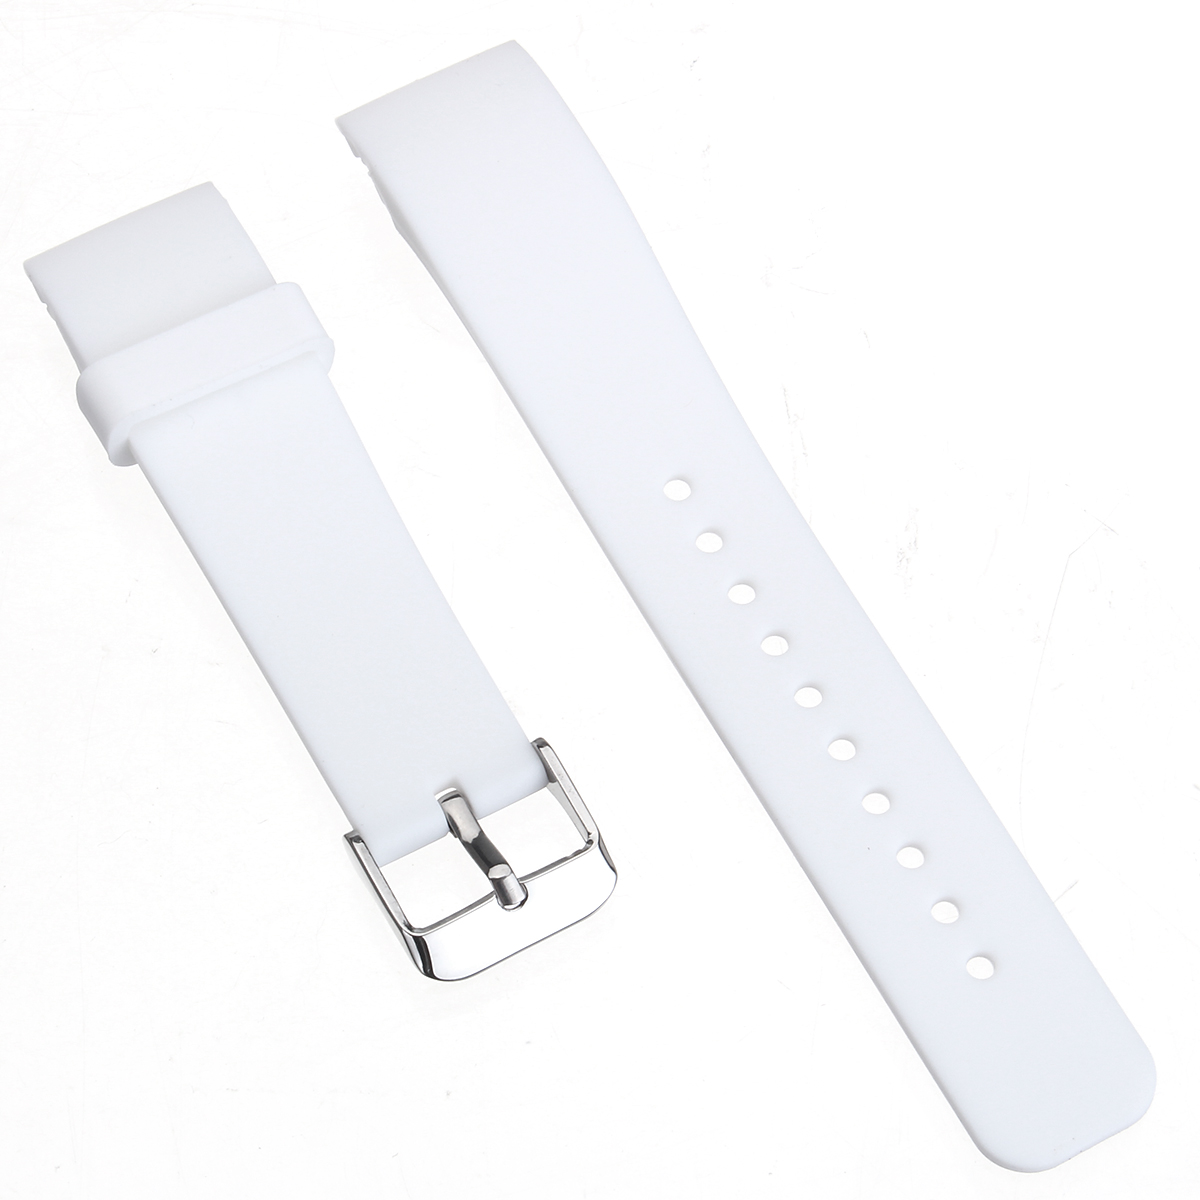 Silicone Smart Watch Band Solid Color Wrist Strap for Samsung Galaxy Gear S2 Classic SM-R732